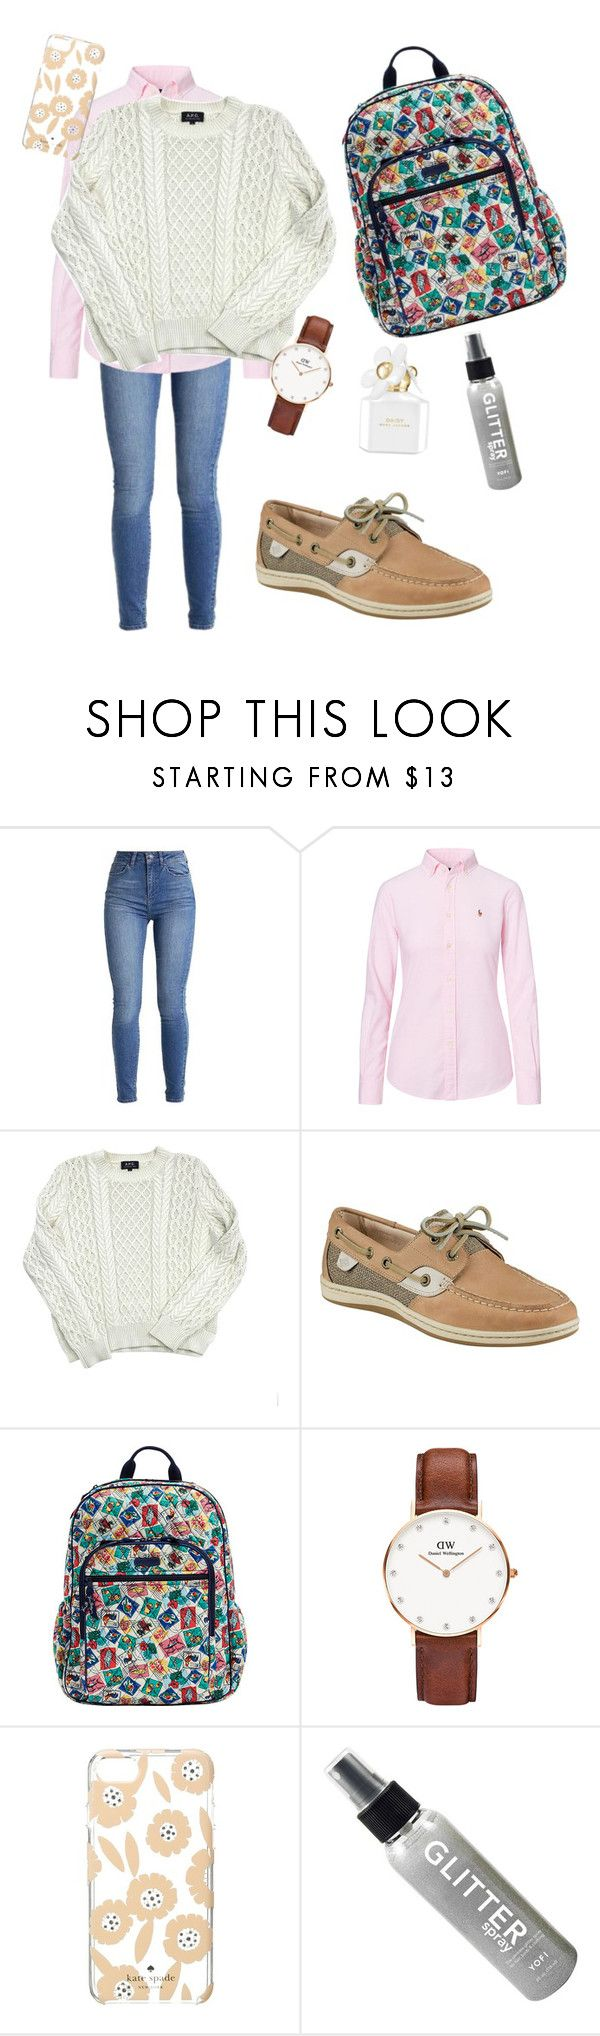 """Preppy school outfit #3"" by abbirwilliams on Polyvore featuring Ralph Lauren, A.P.C., Sperry, Vera Bradley, Daniel Wellington, Kate Spade and Marc Jacobs"